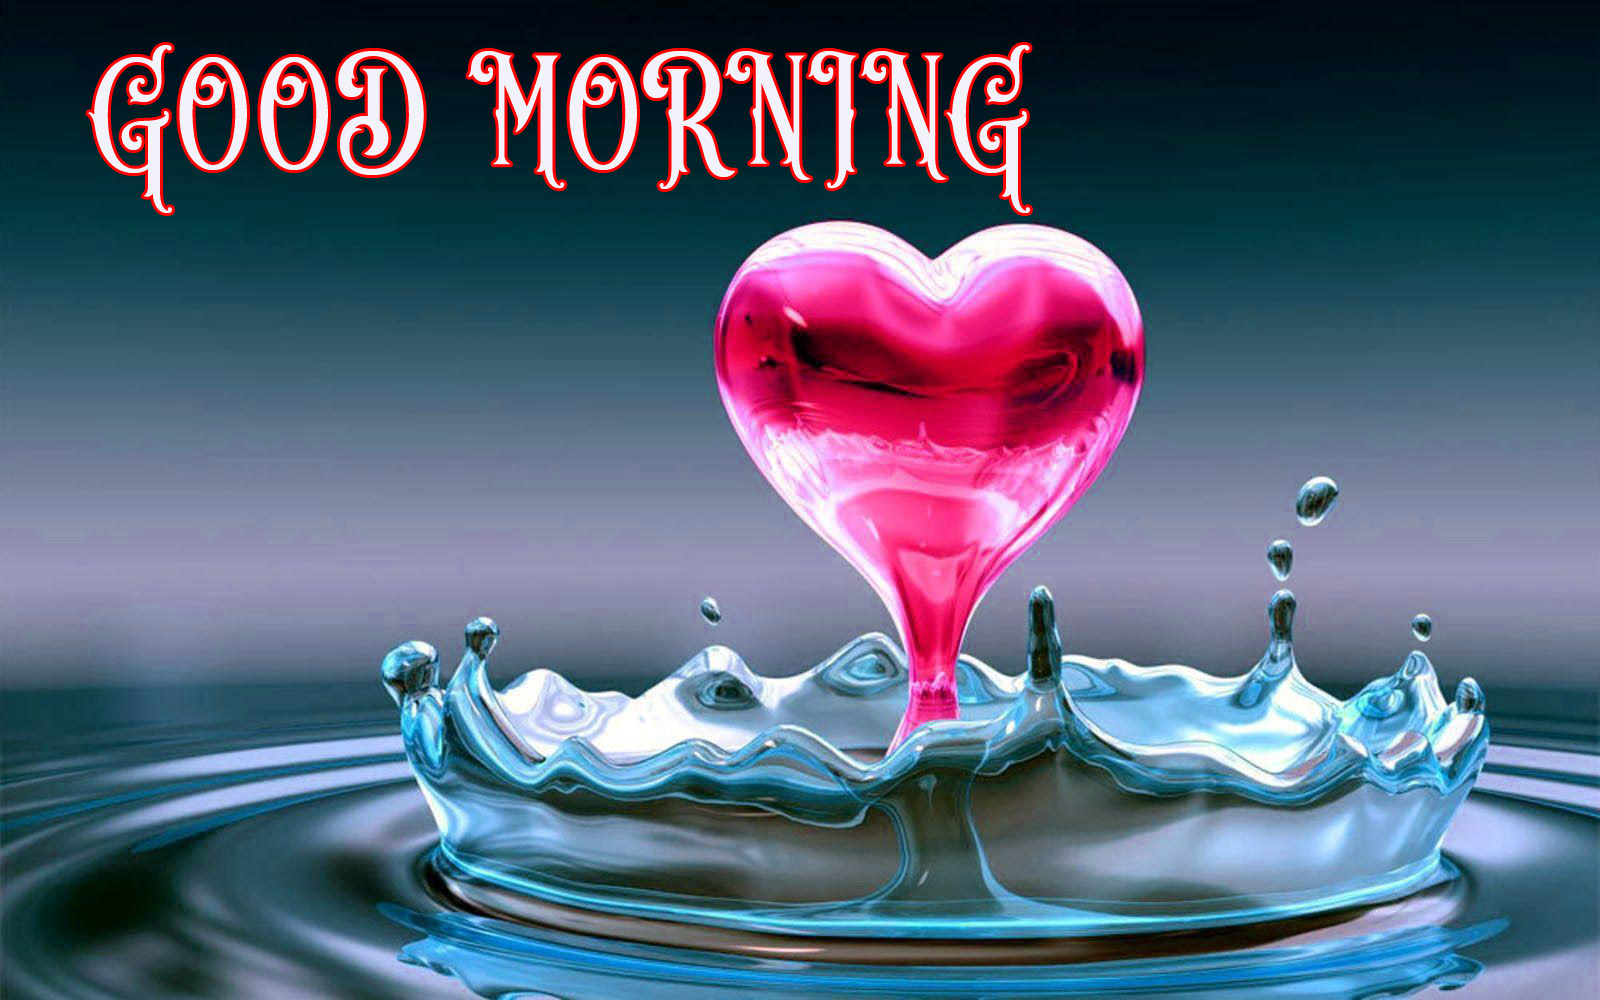 New Lover Good Morning Images Download For Whatsapp Wallpaper photo Pics Download